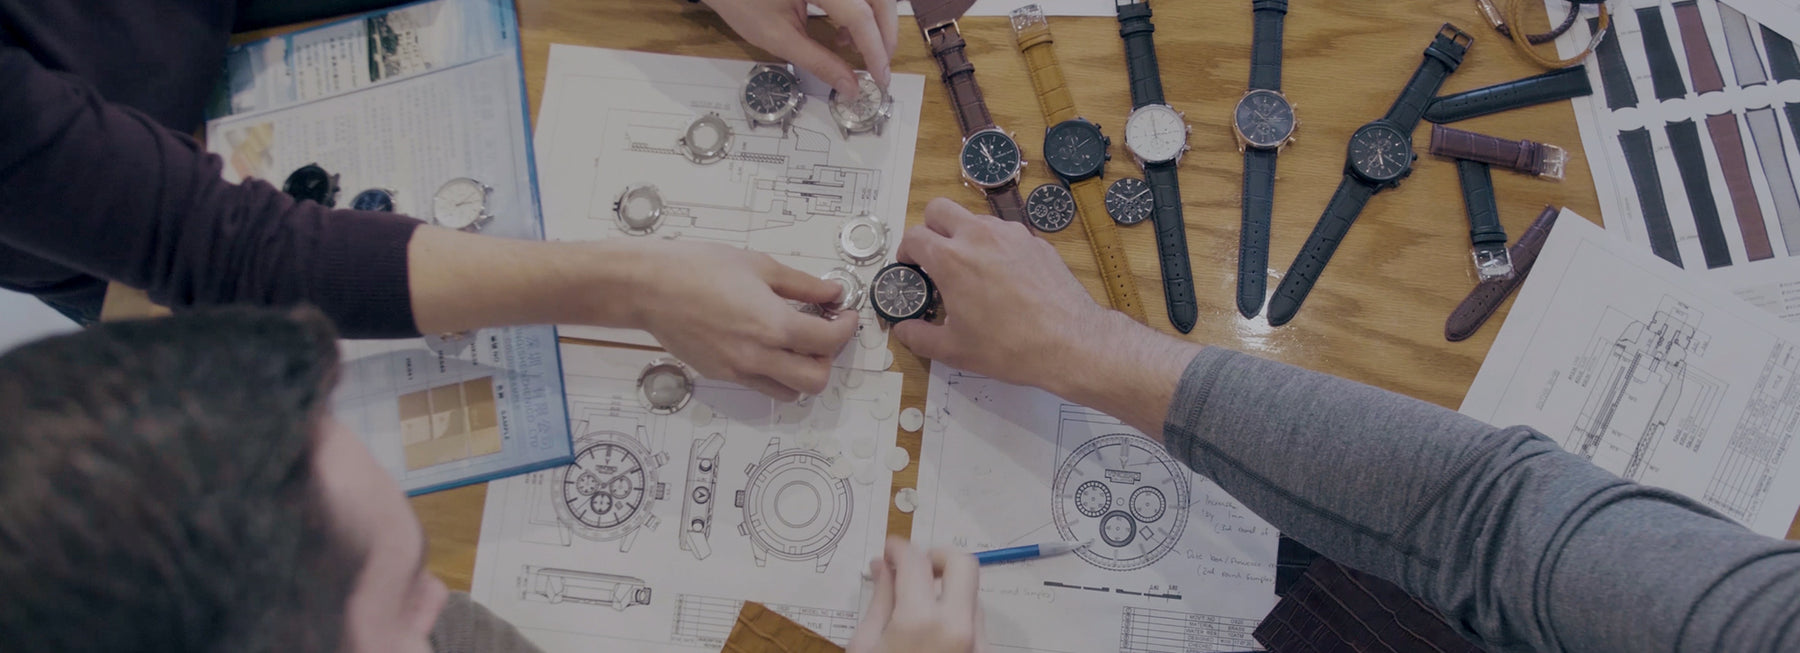 People holding unassembled parts of watch in wooden table with blueprints of watches